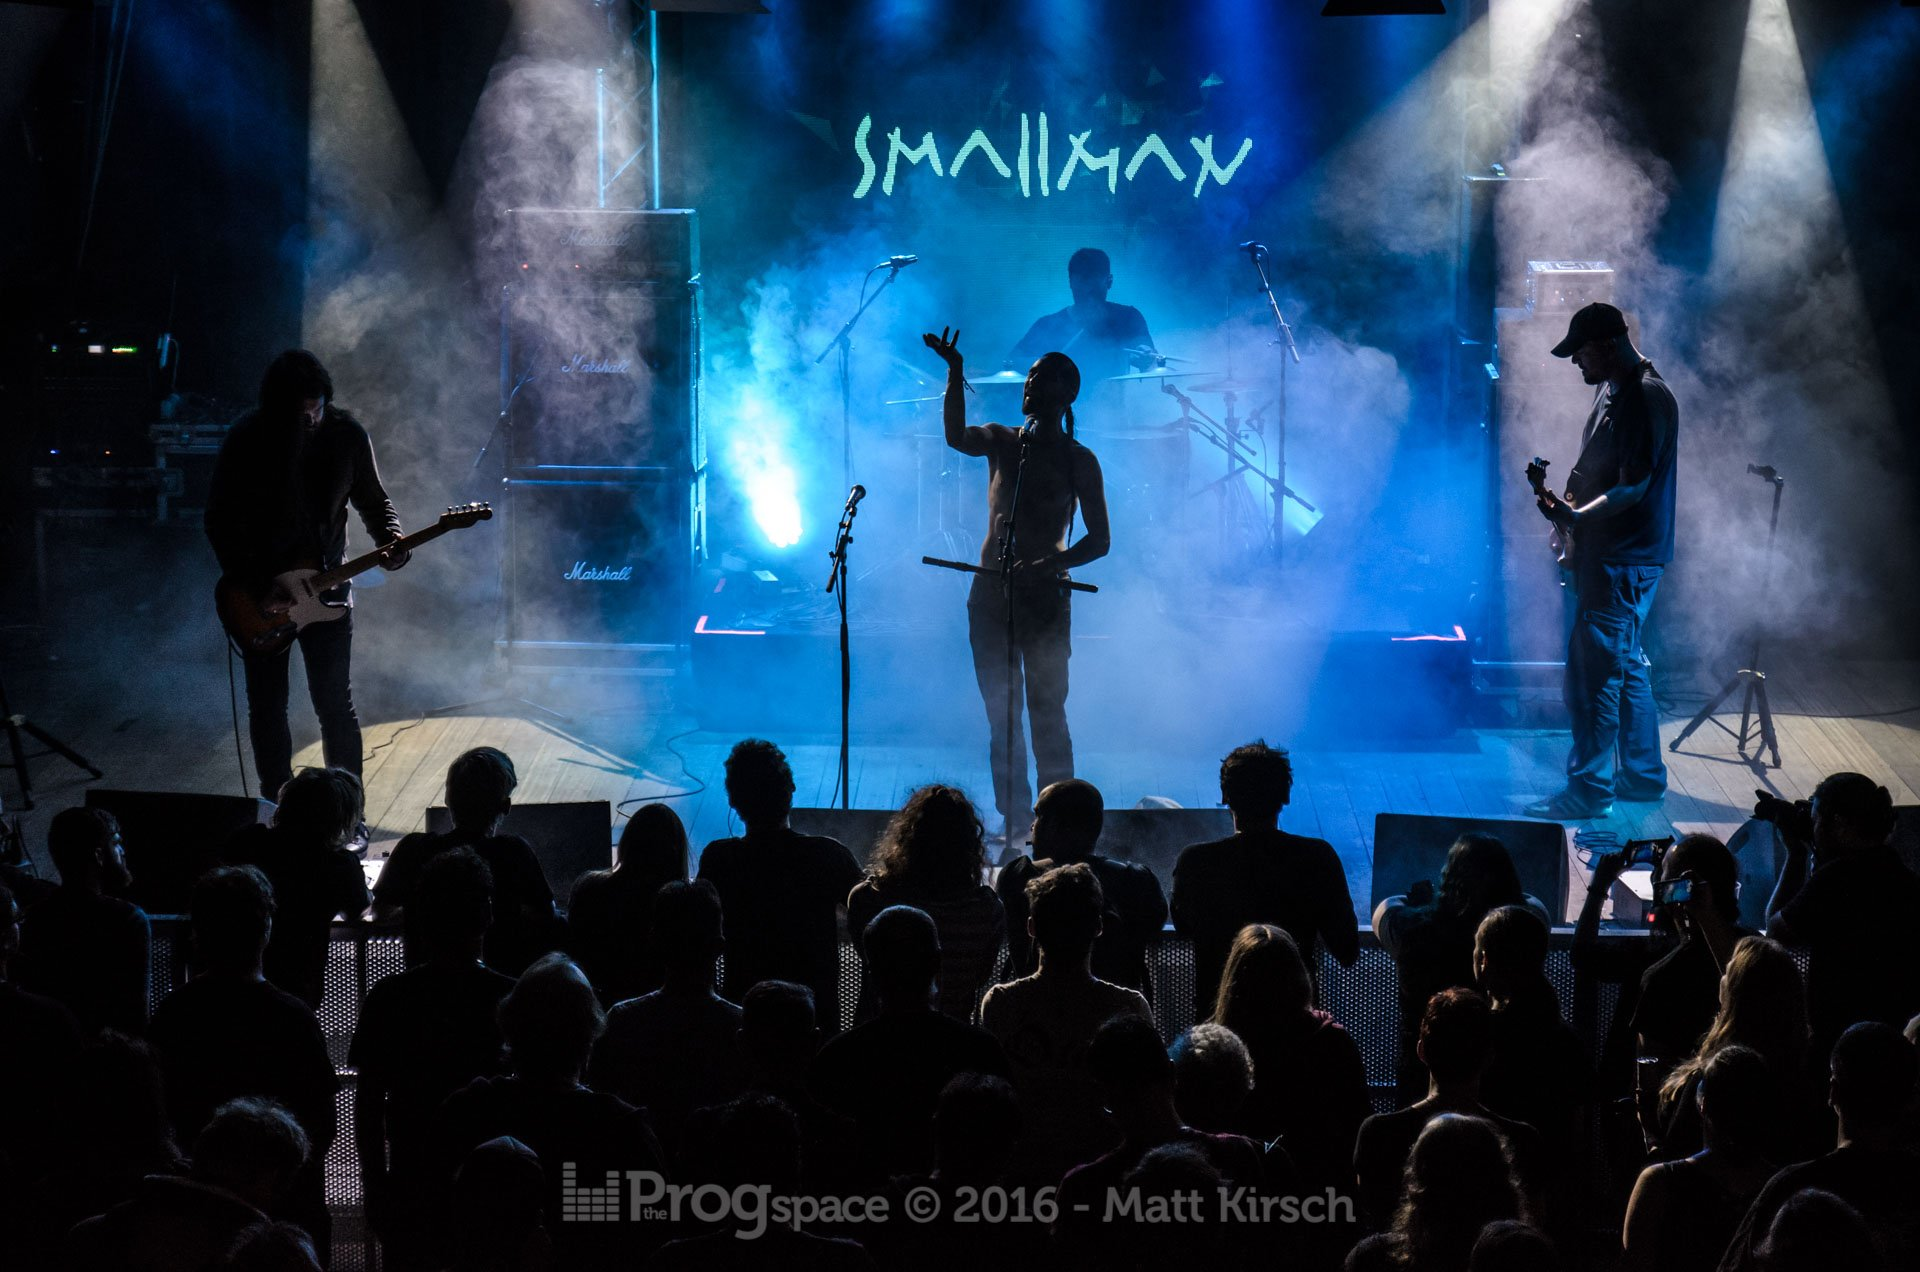 Smallman at ProgPower Europe 2016